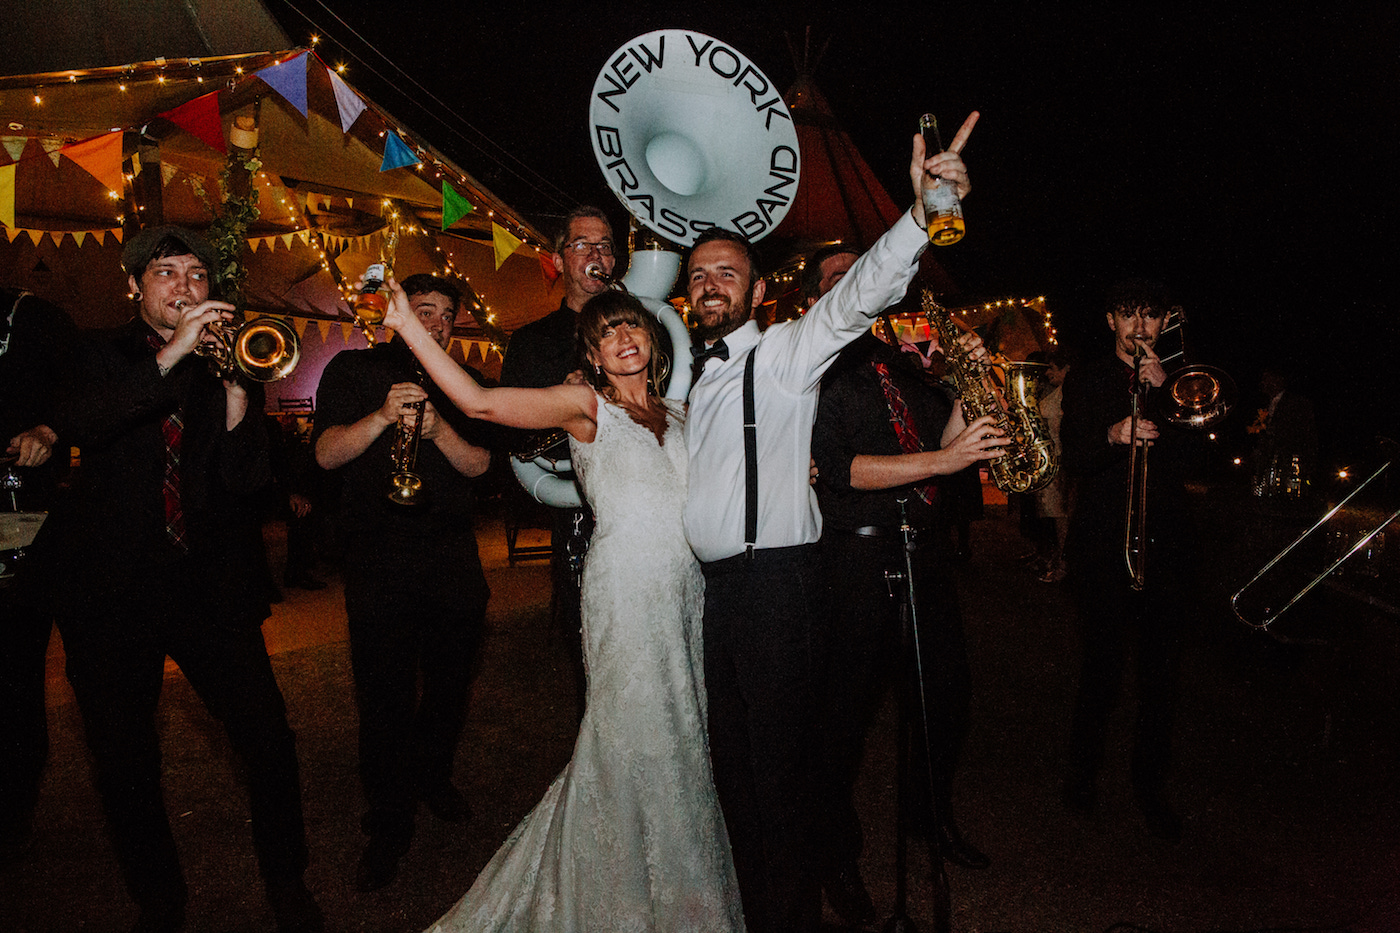 new york brass band festival wedding